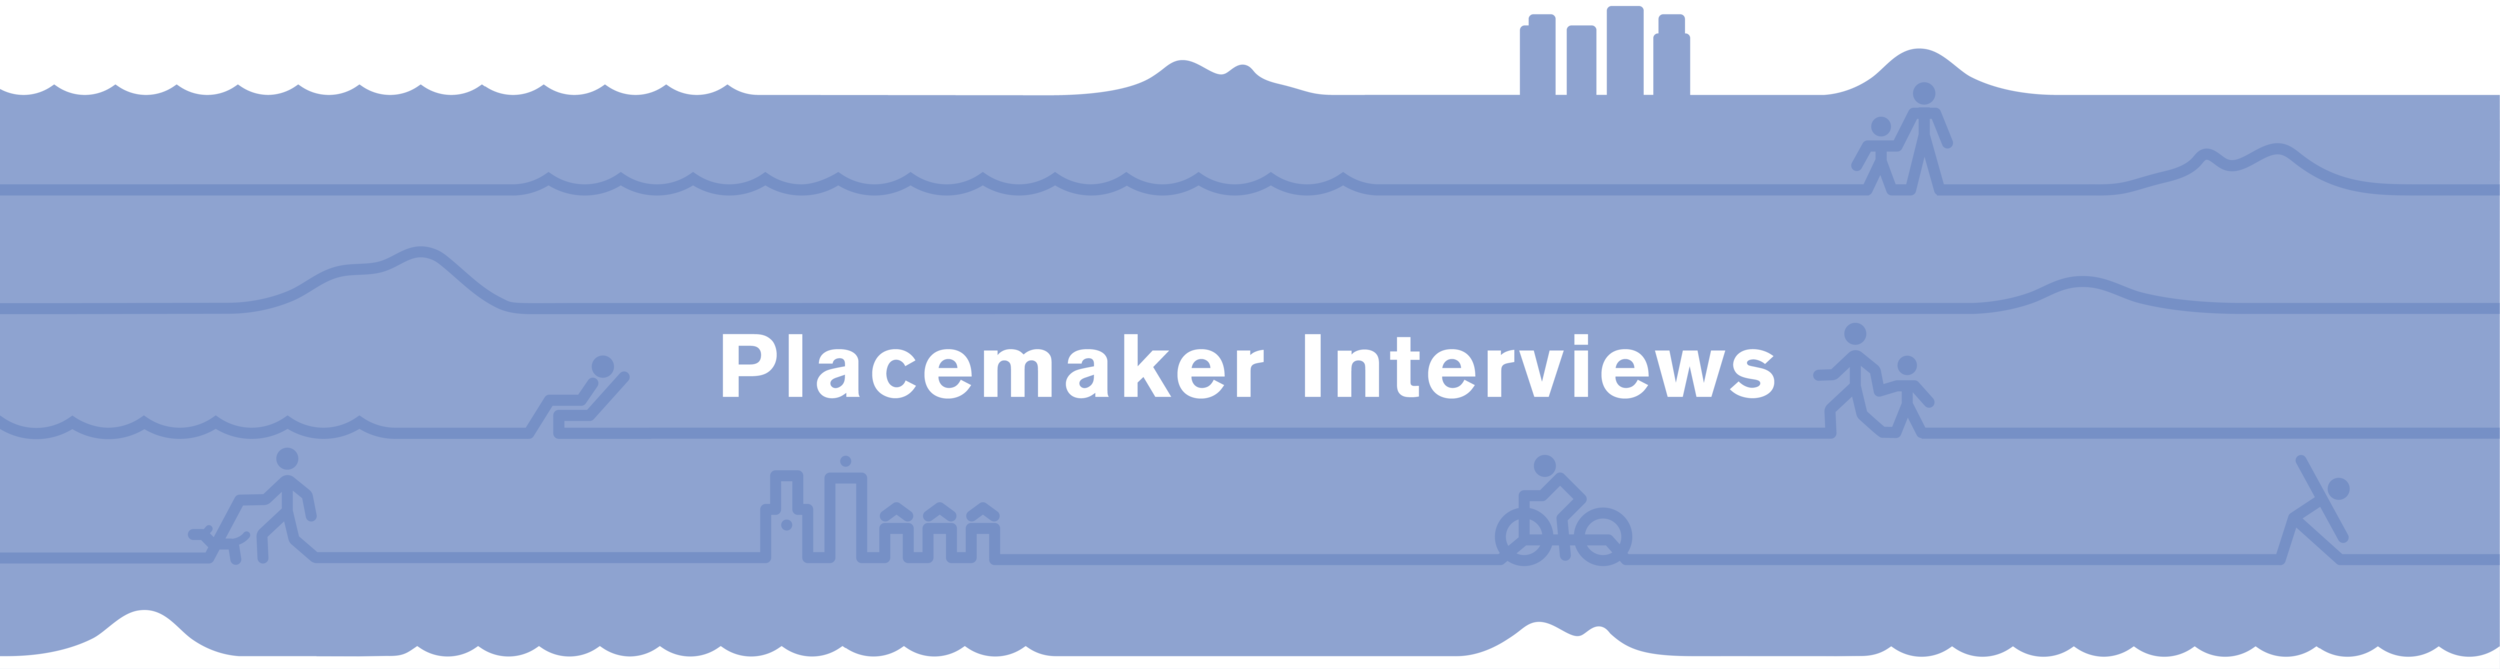 Placemaker Interviews-03.png